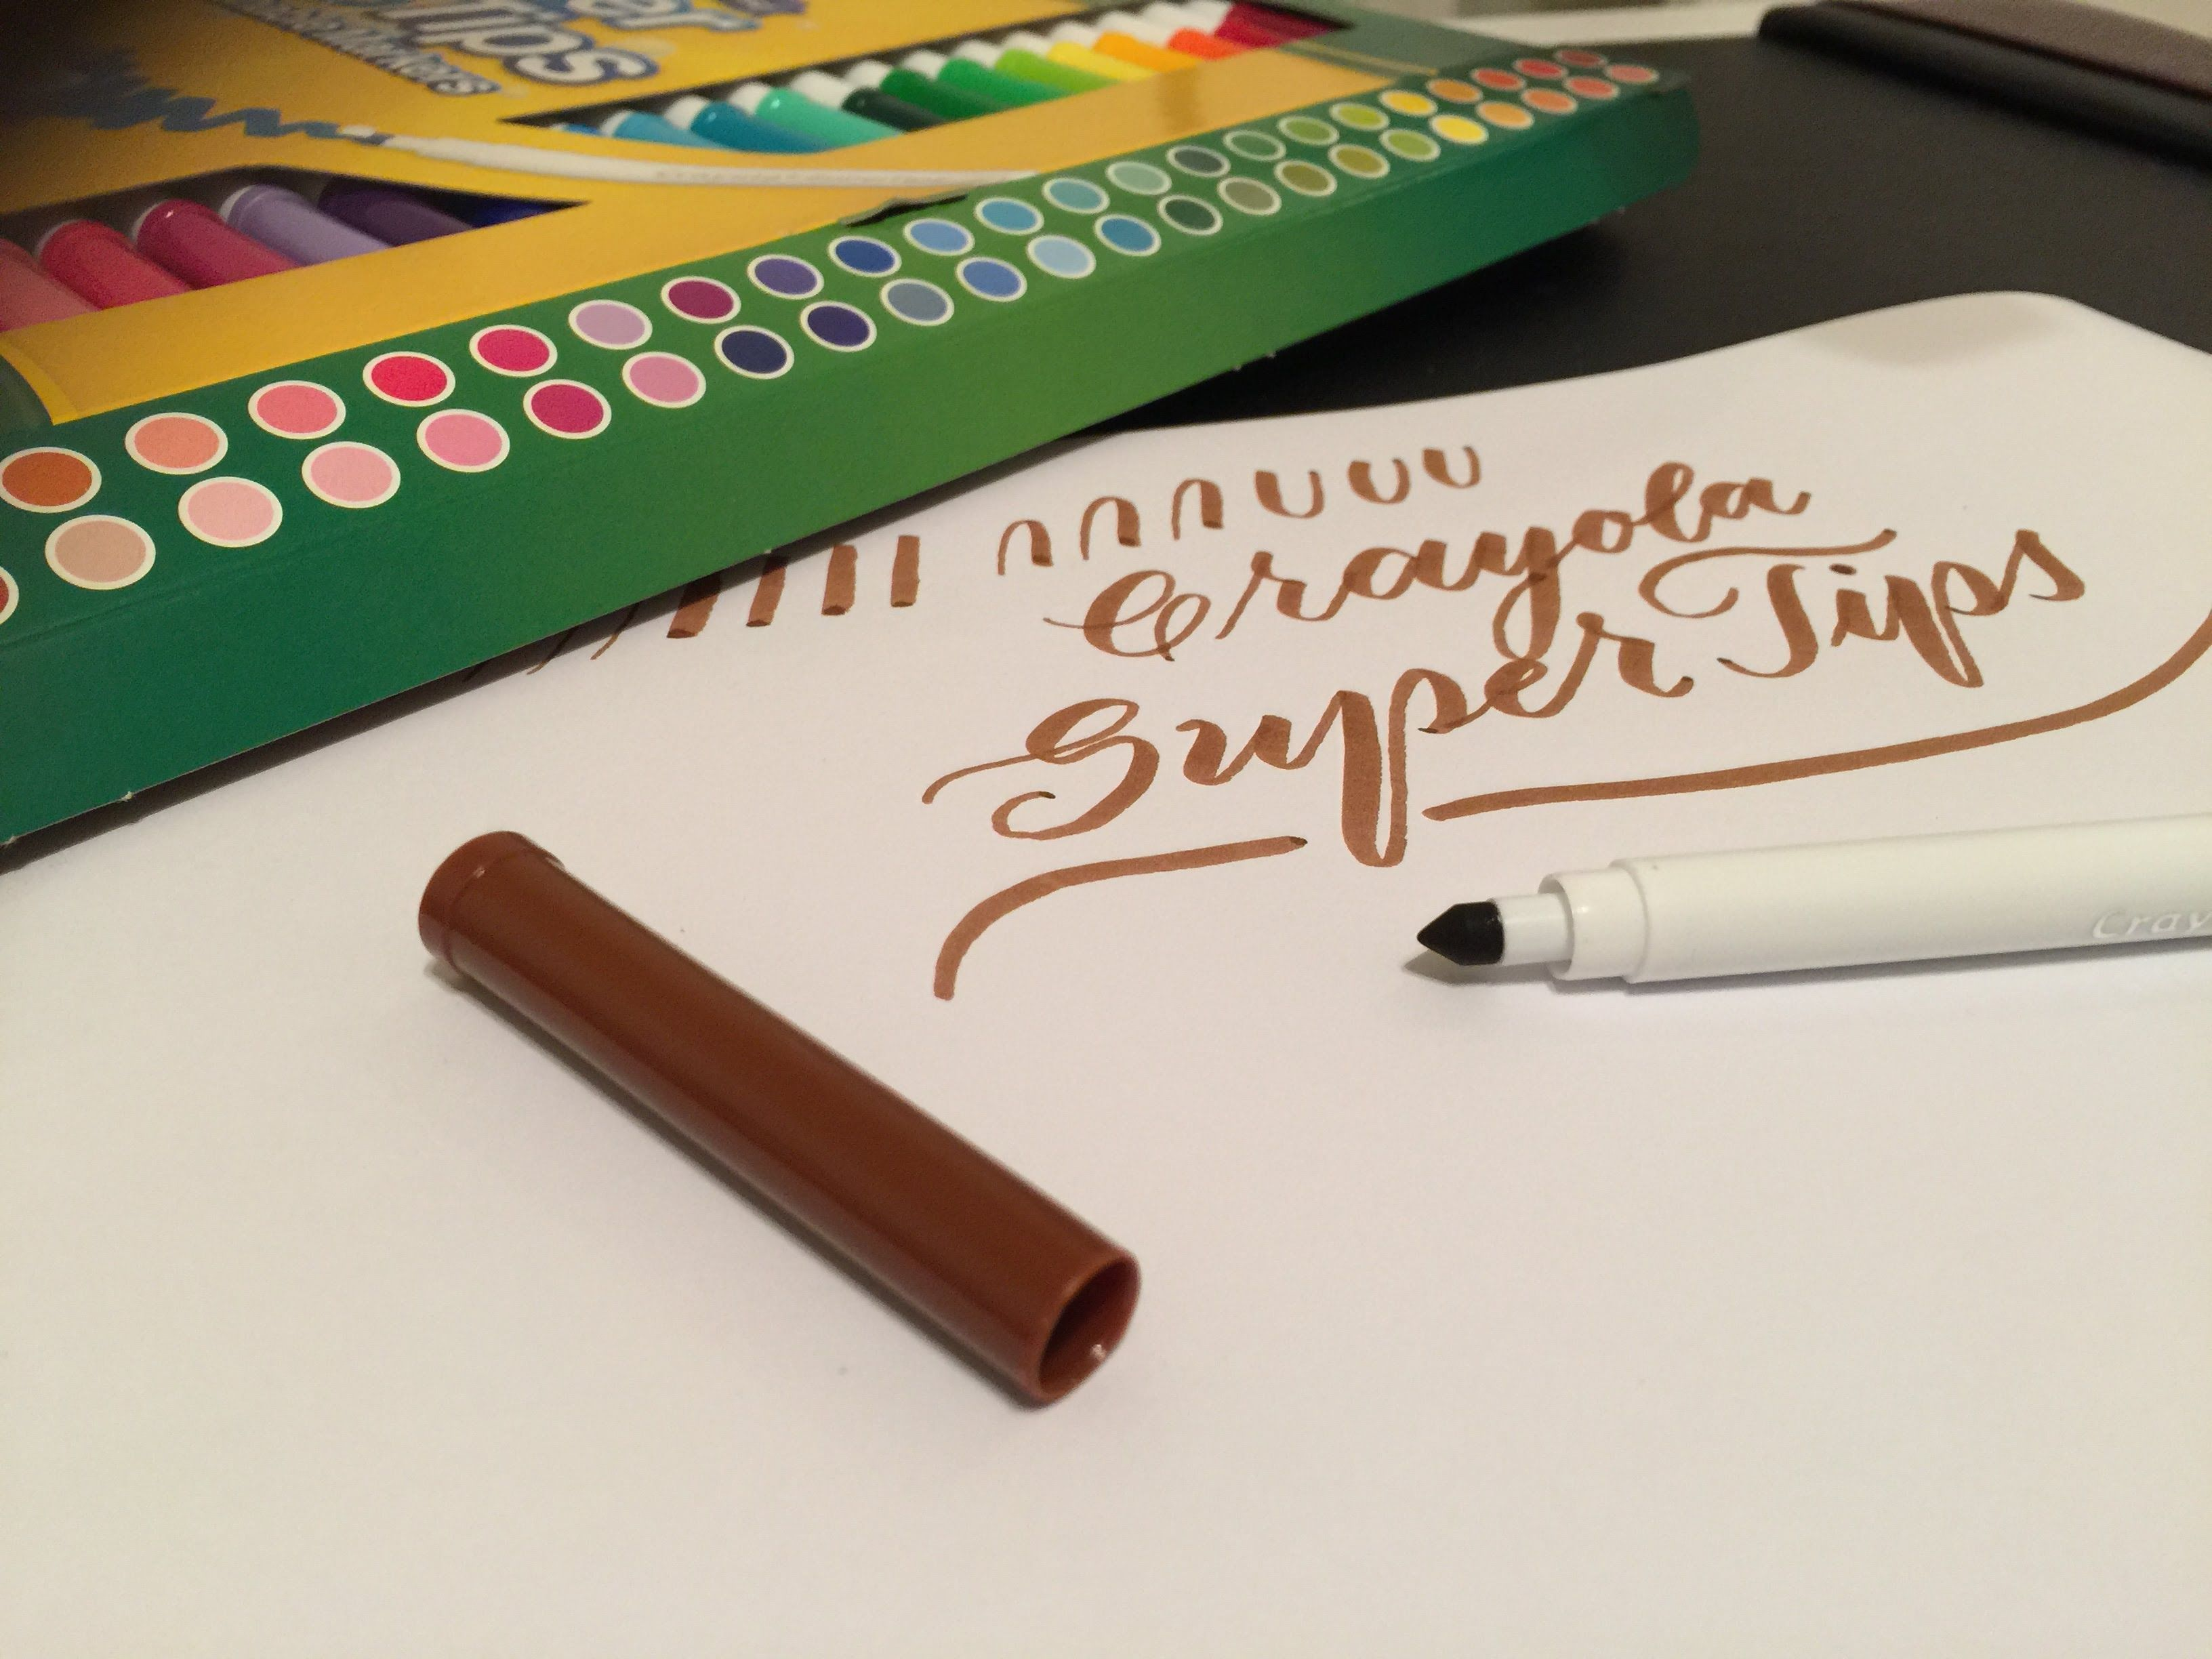 Using crayola super tips markers for modern calligraphy